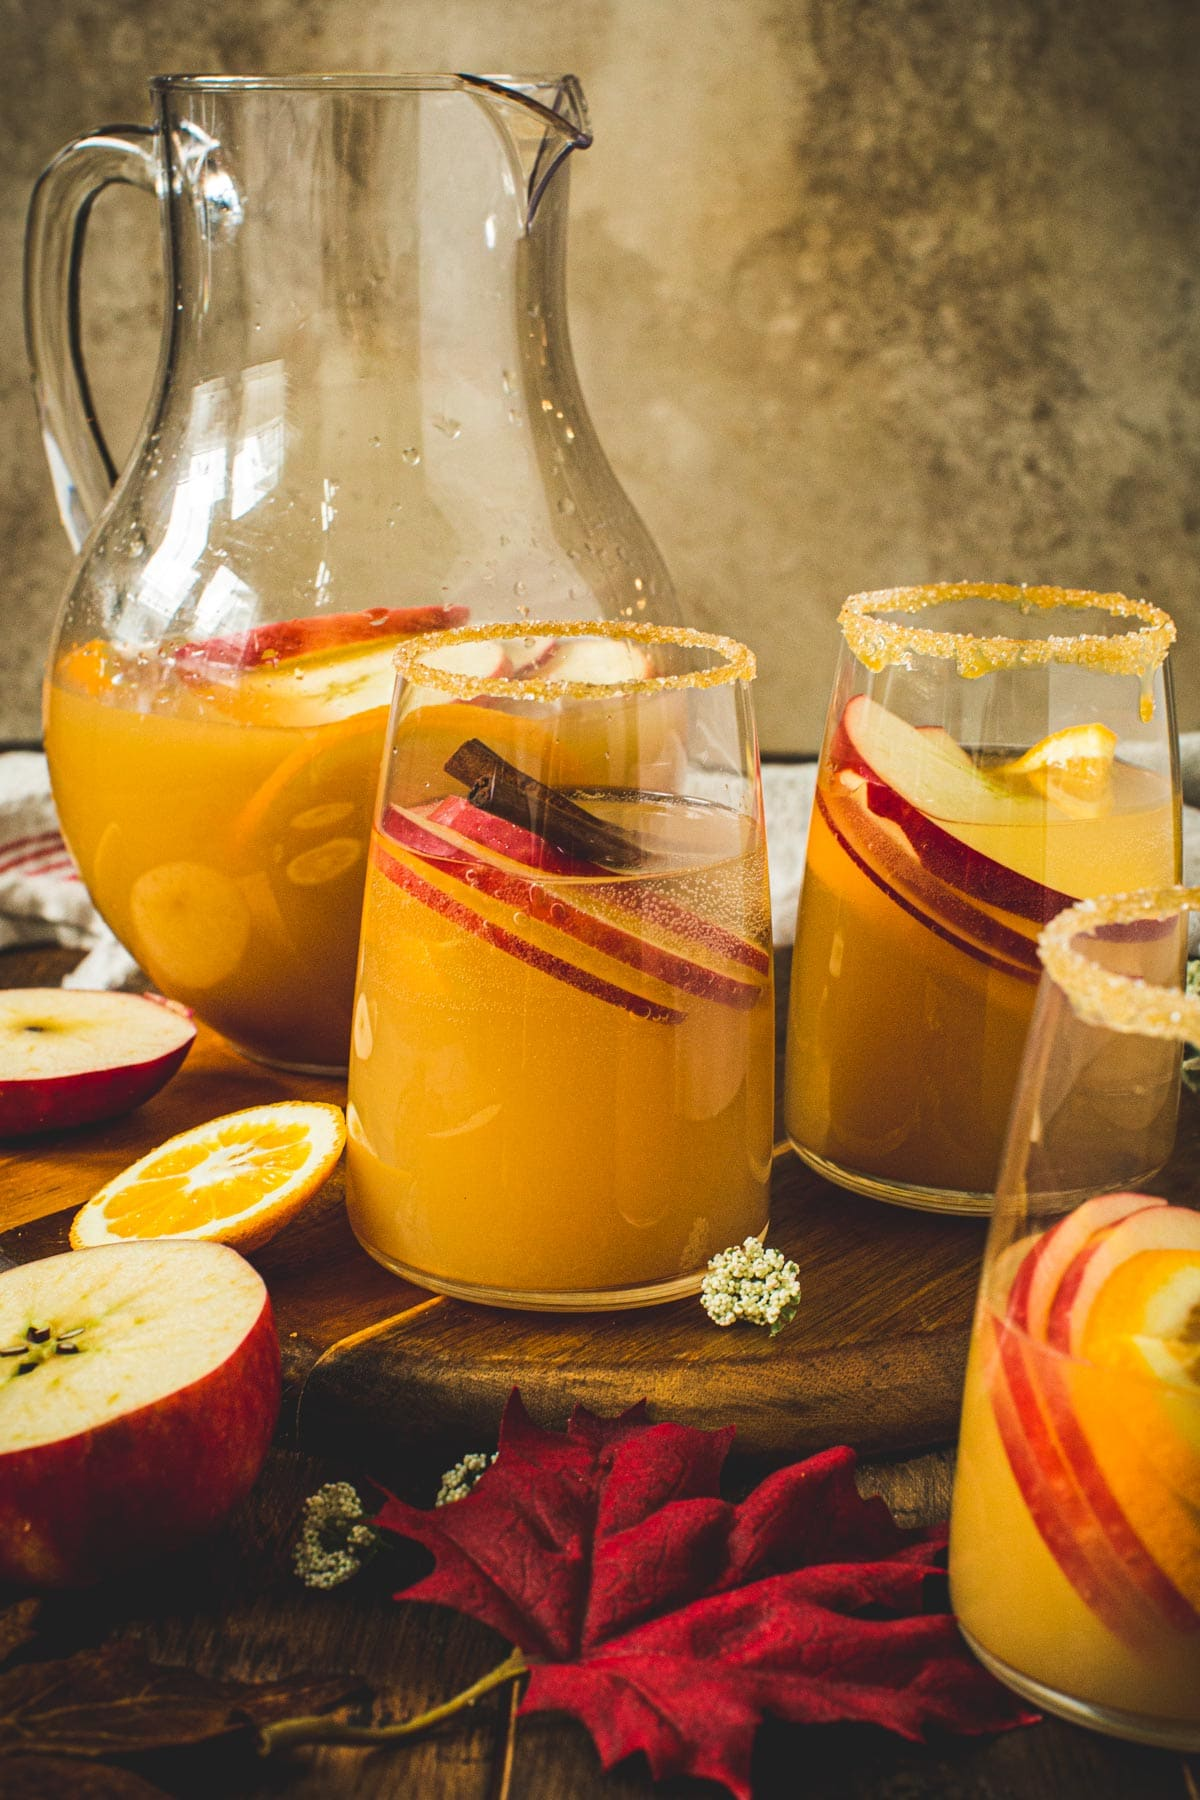 Three glasses filled with caramel apple sangria with a pitcher sitting behind.